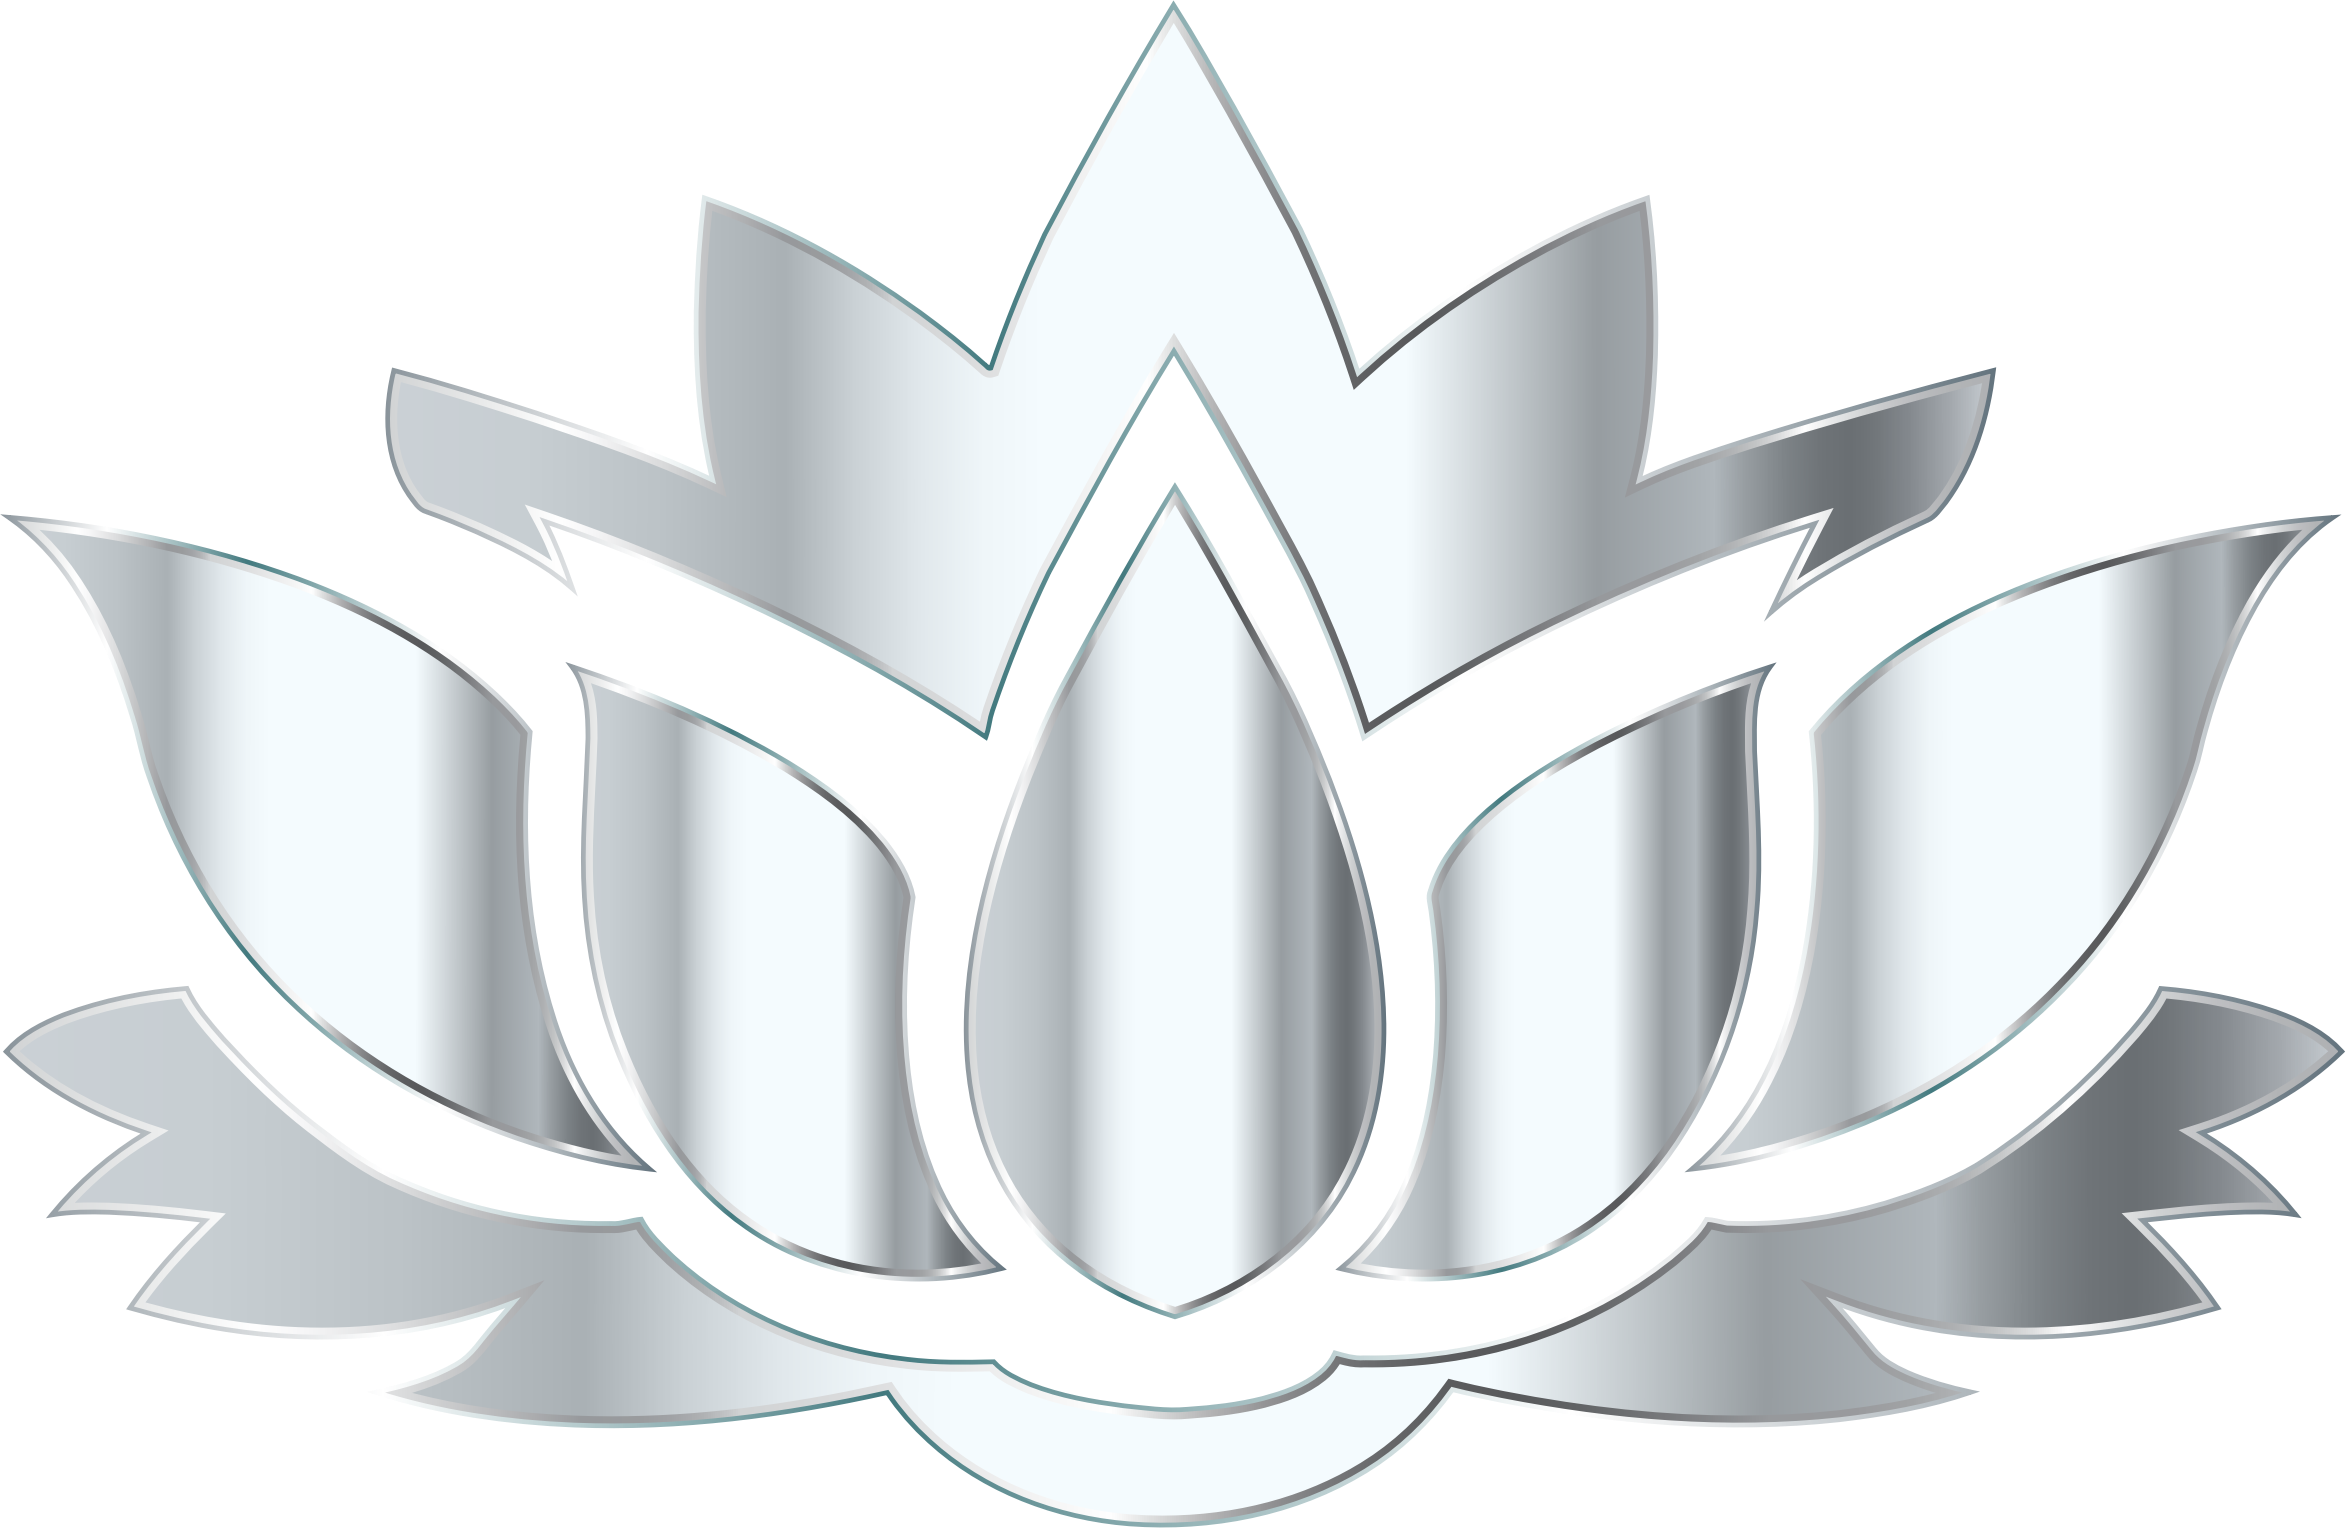 Clipart Silver Lotus Flower Silhouette No Background